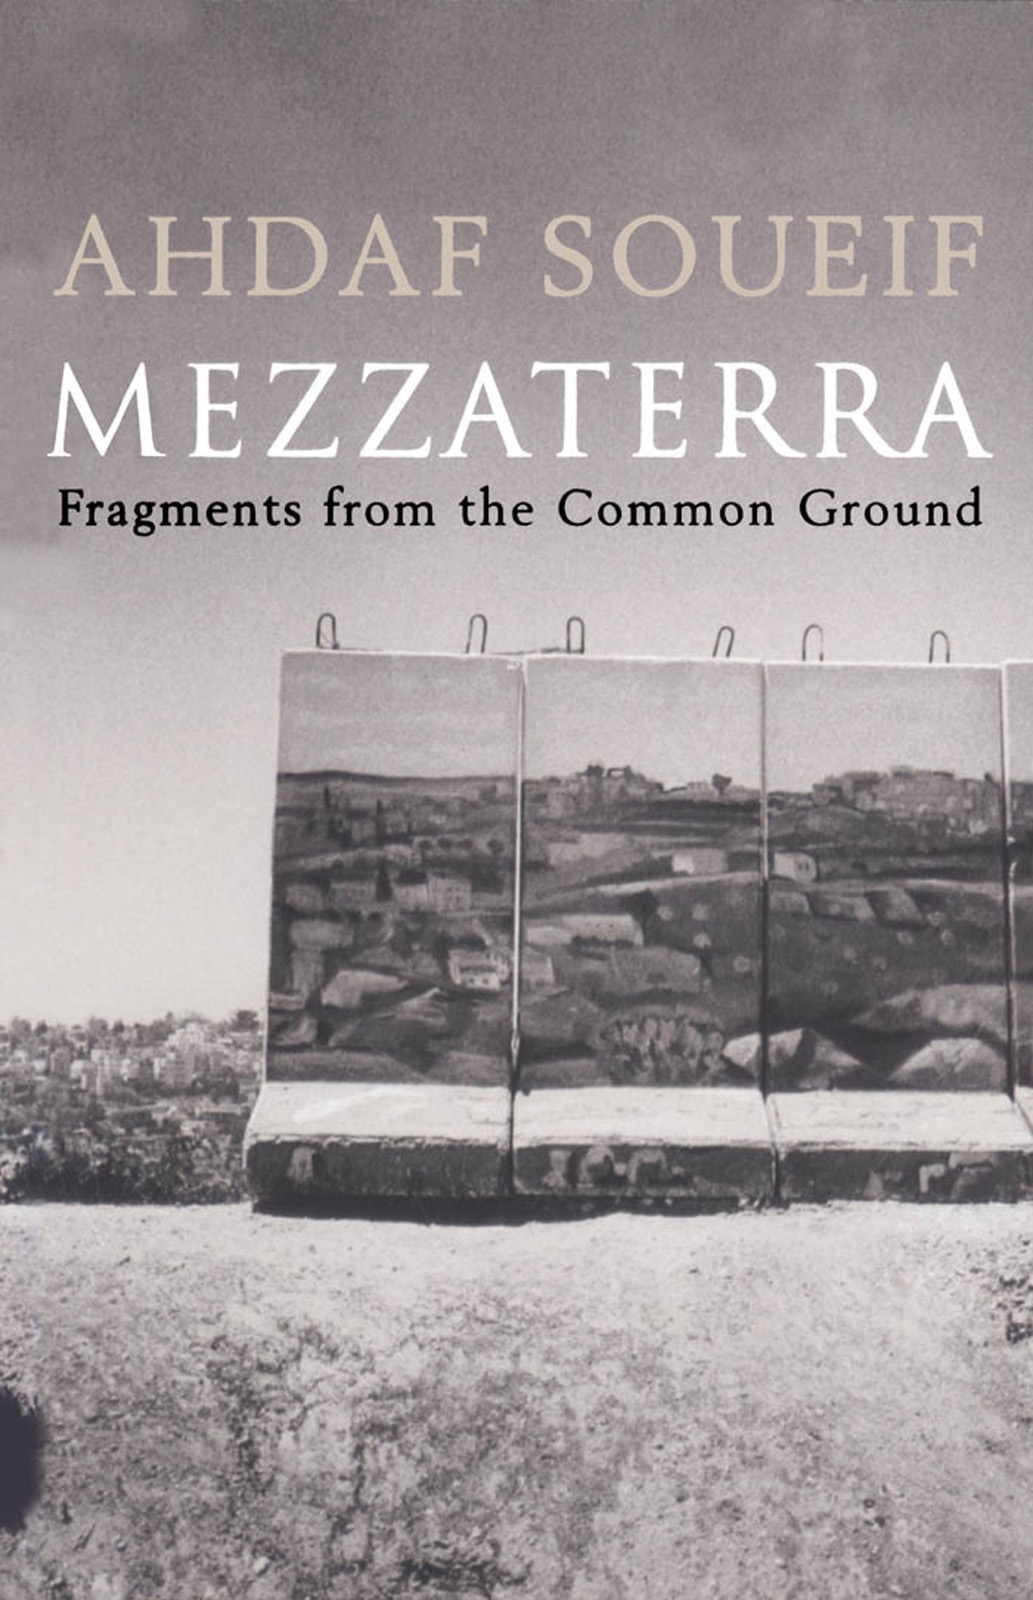 Mezzaterra Fragments from the Common Ground